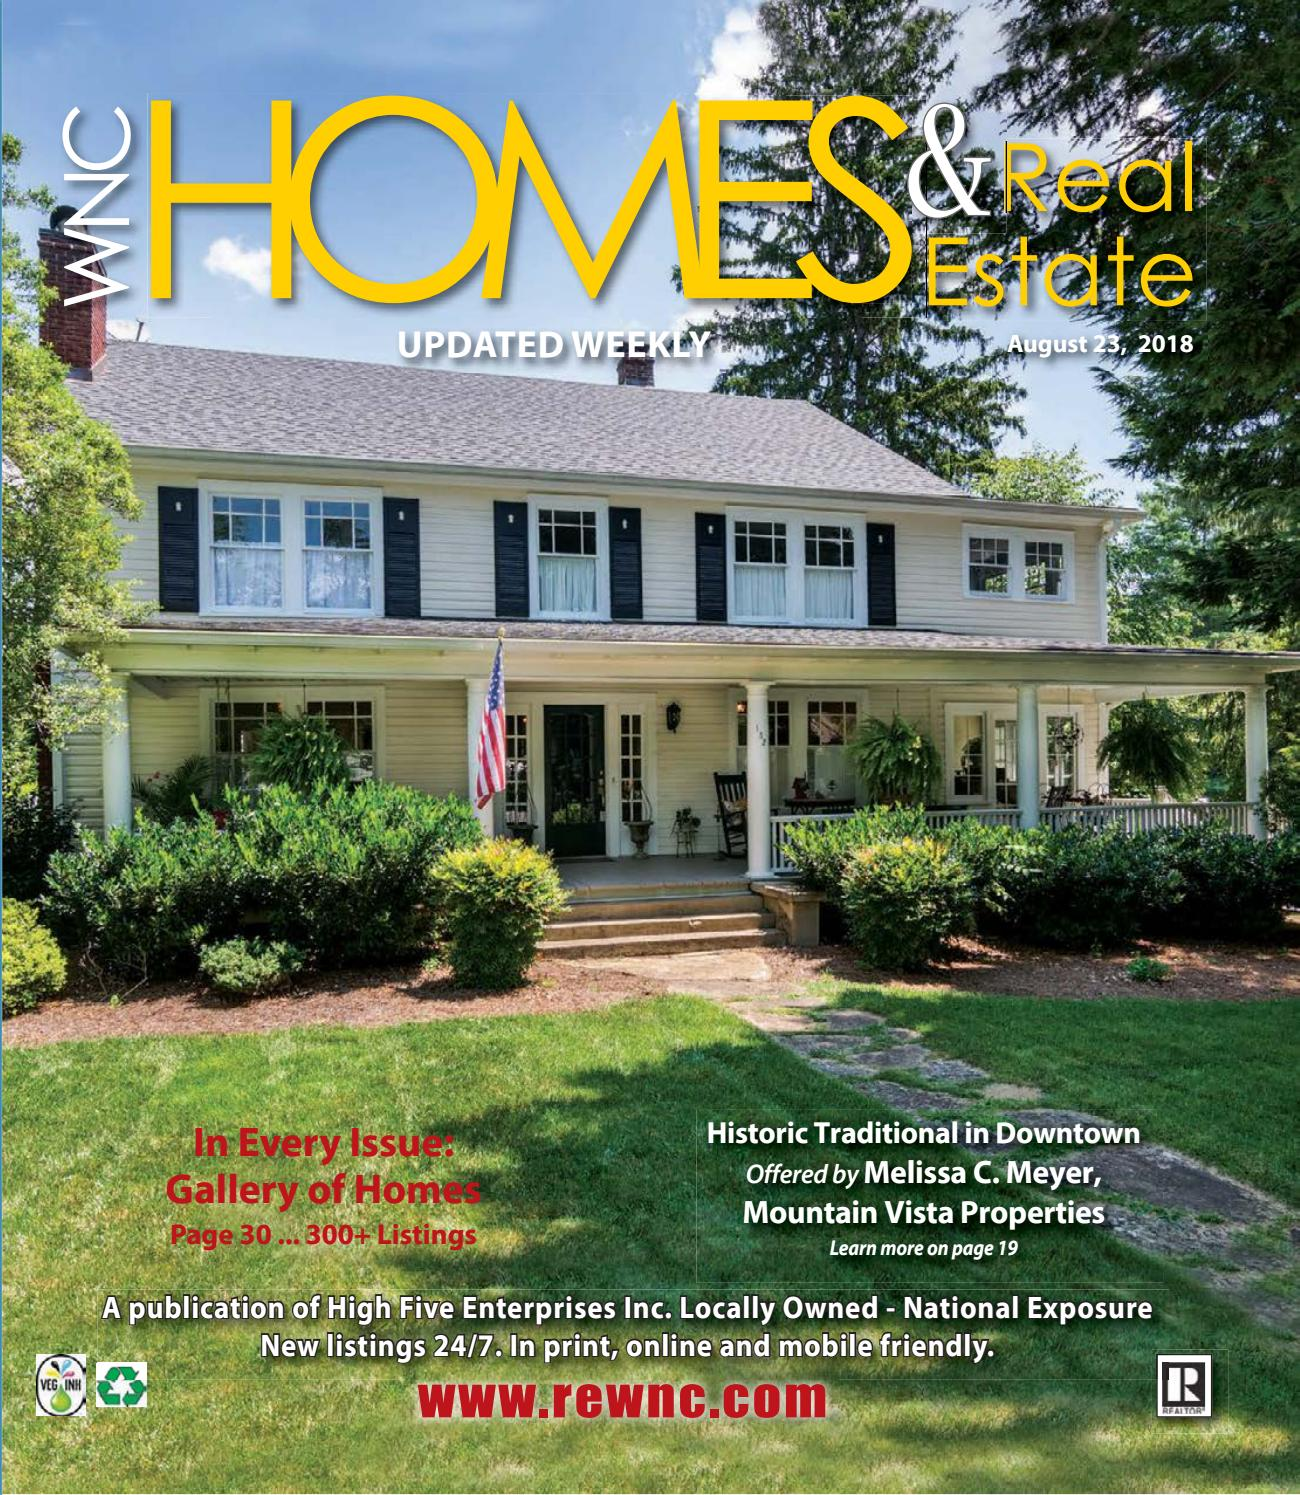 vol 29 august 23 by wnc homes real estate issuu rh issuu com